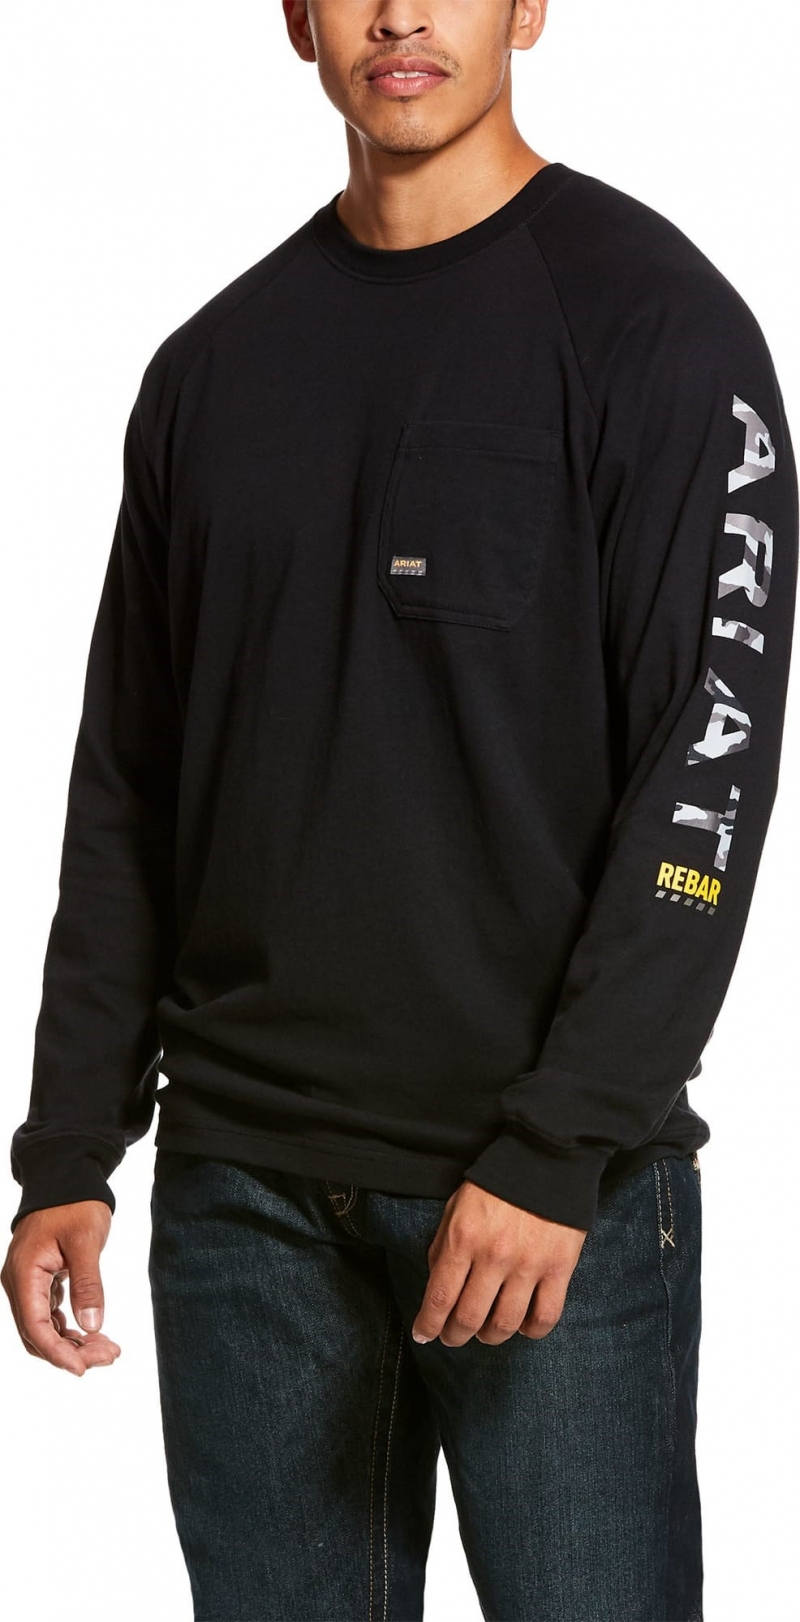 Ariat Rebar Cottonstrong Graphic Crewneck L/S T-Shirt - Black